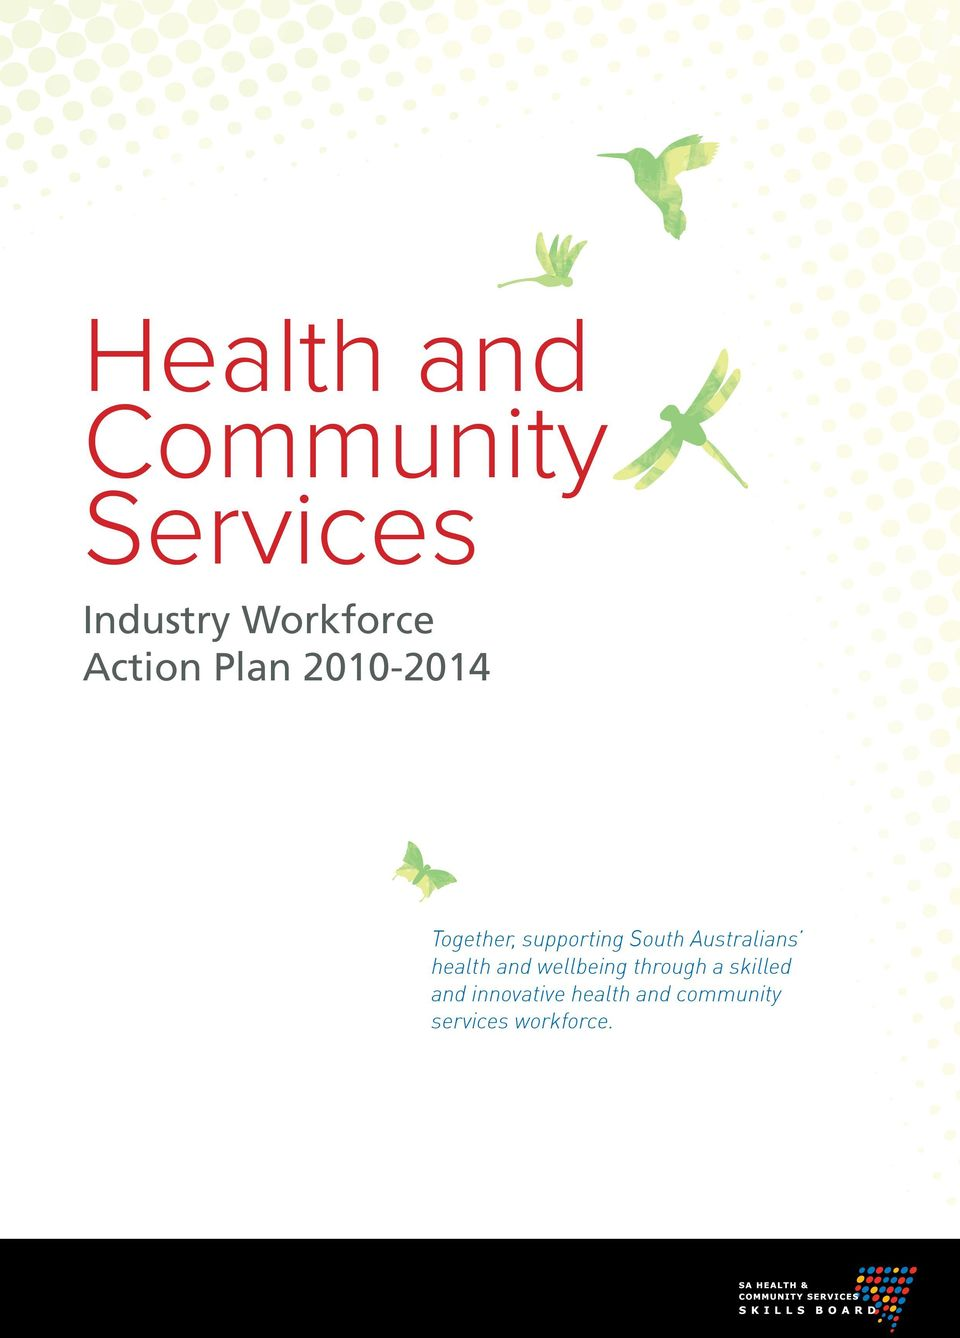 Australians health and wellbeing through a skilled